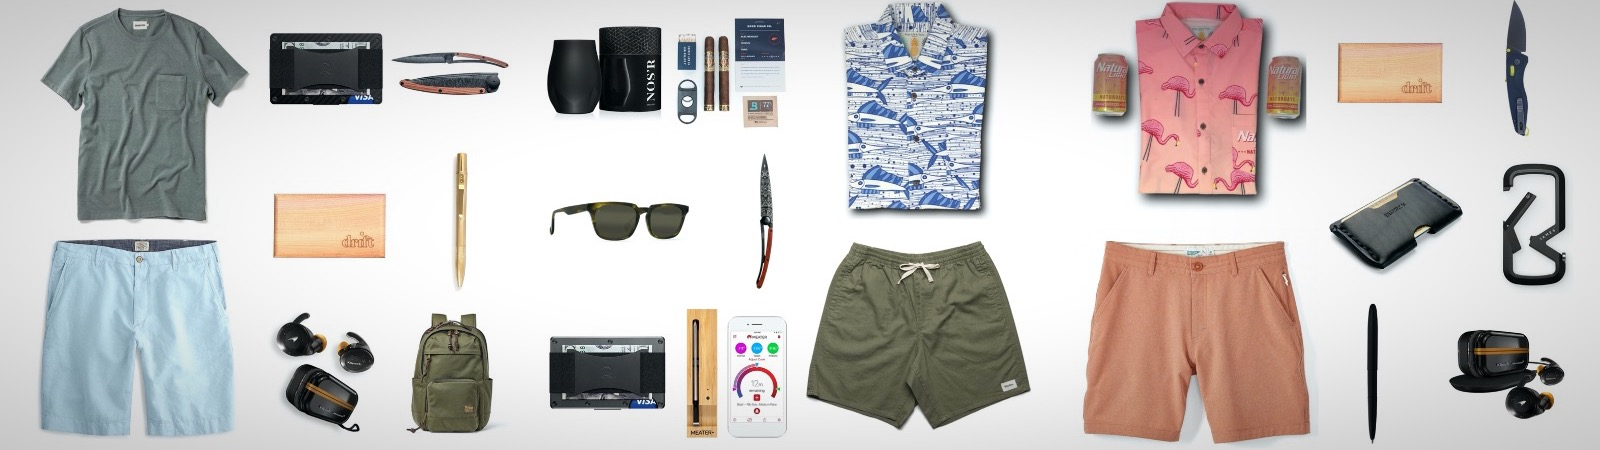 50 'Things We Want' This Week — A Roundup Of This Week's Best Gear For Men